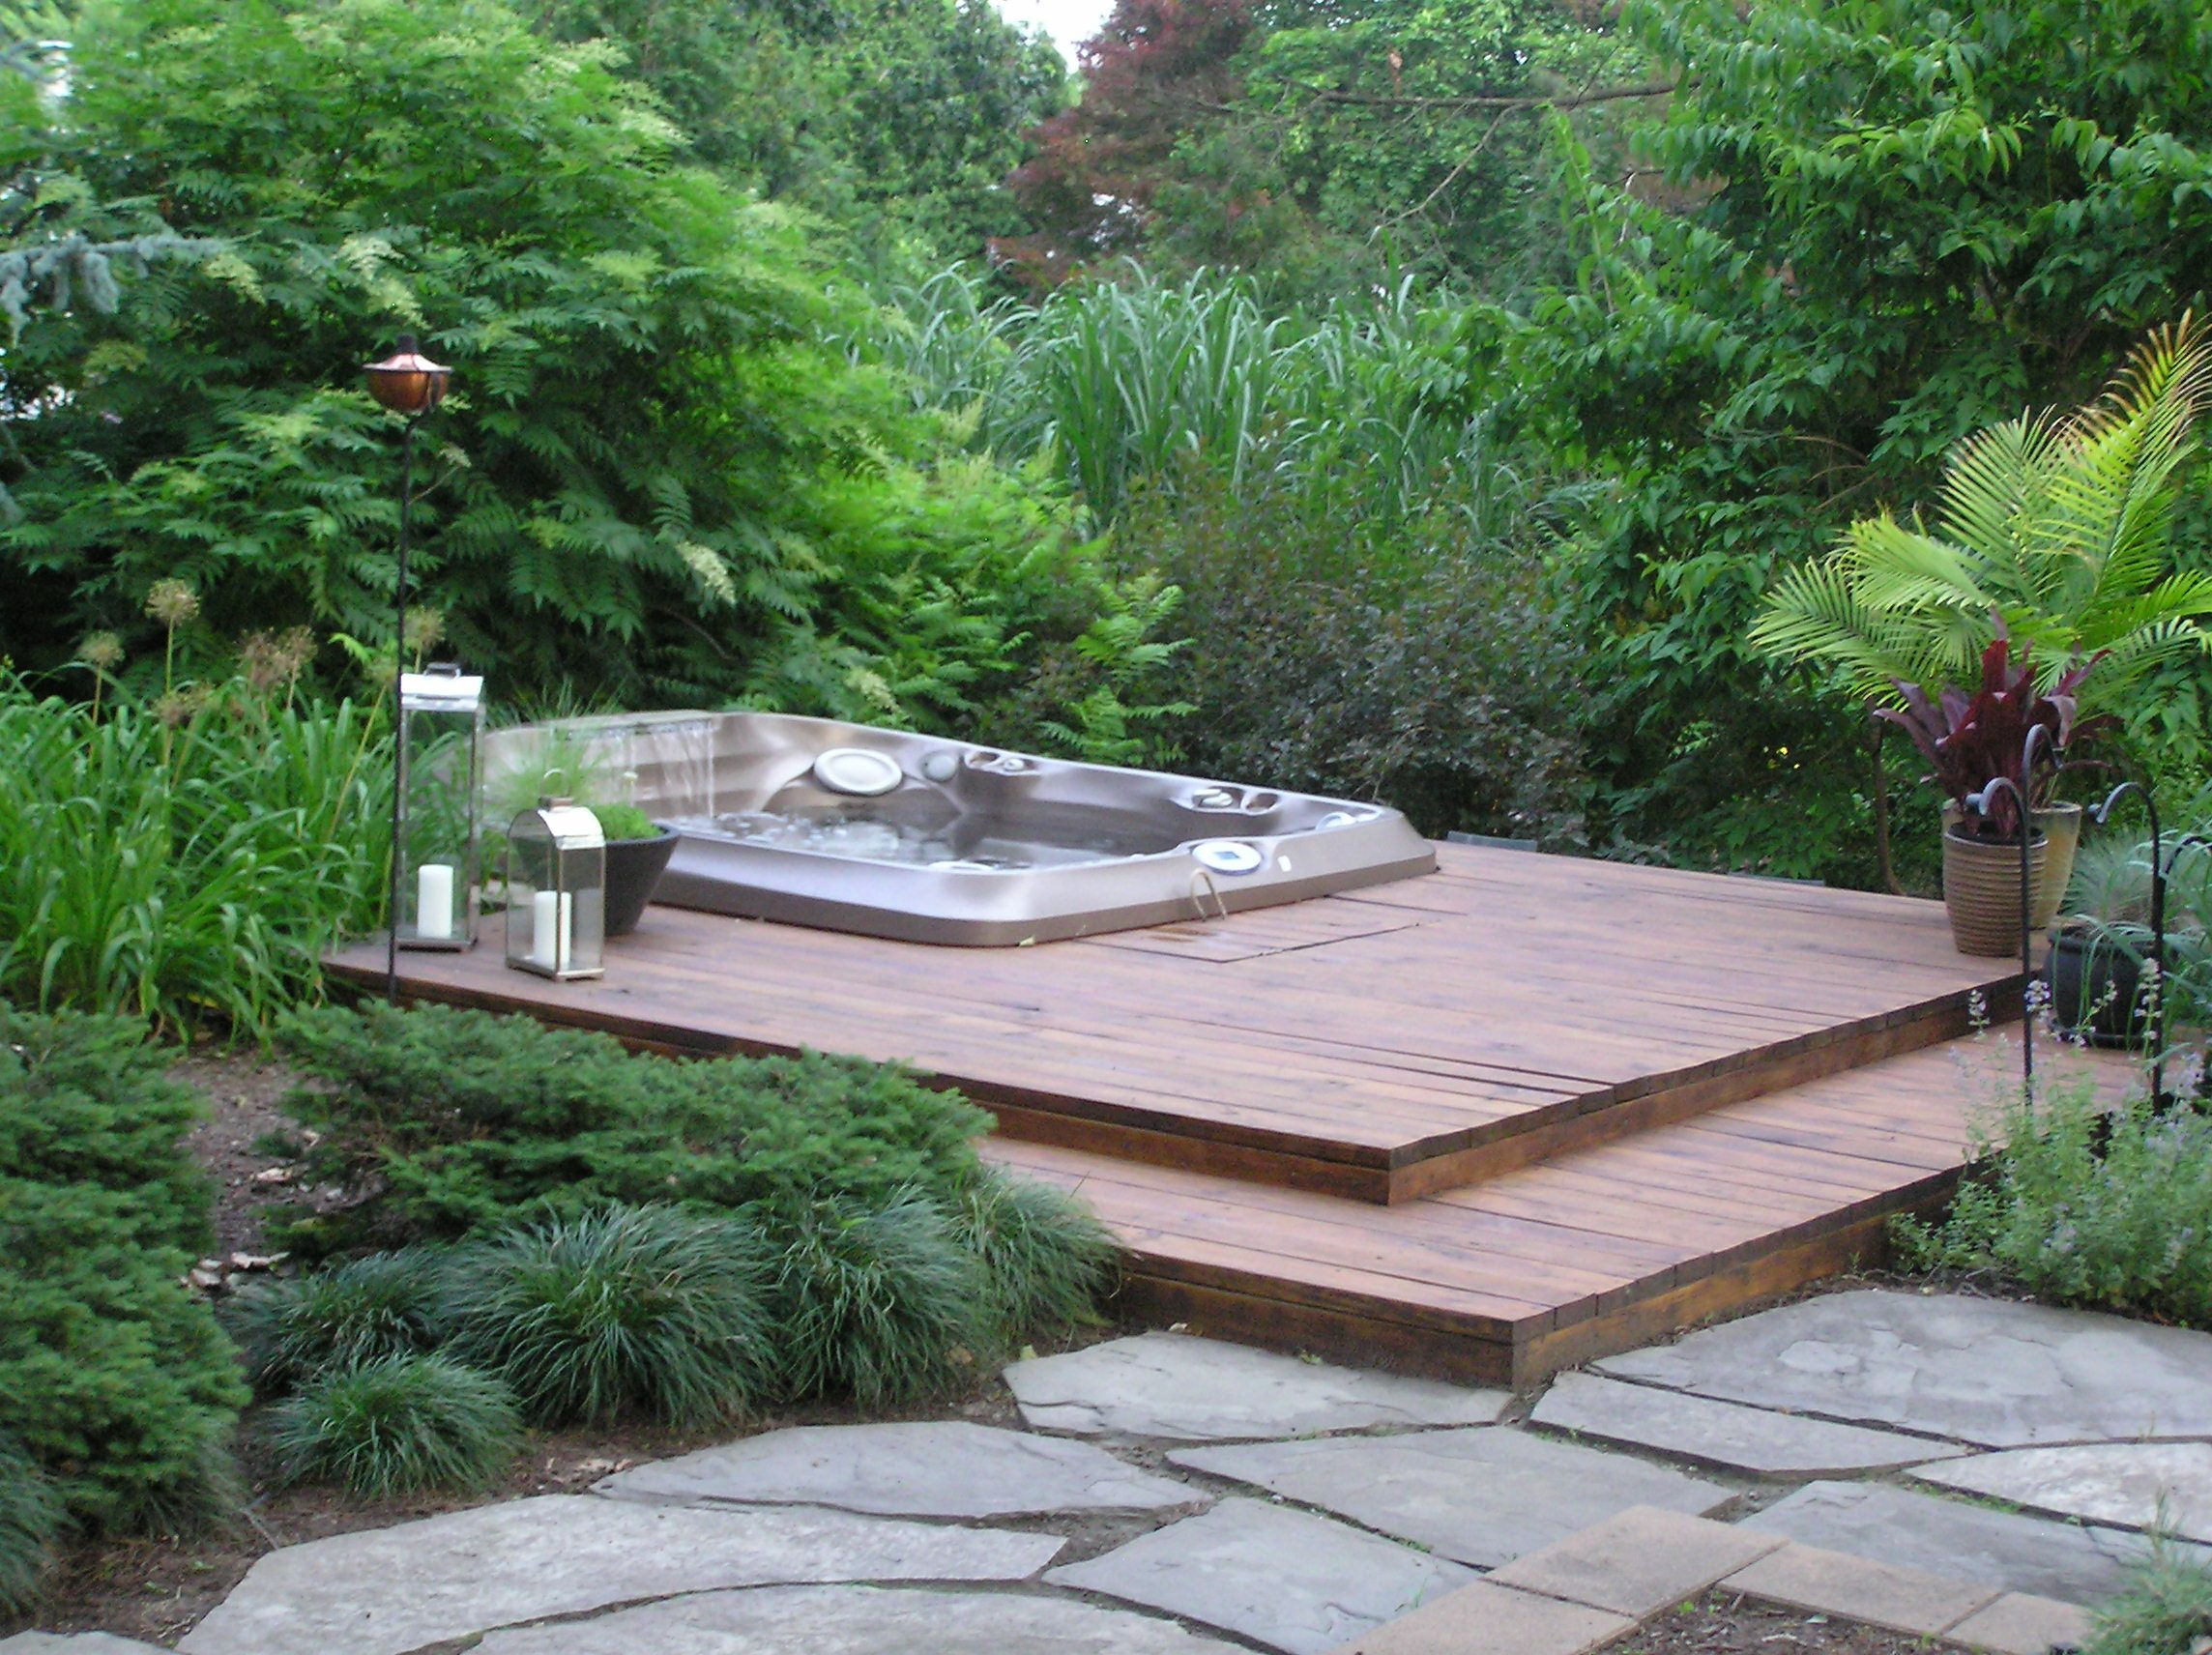 backyard hot tub landscaping marissa kay home ideas - Garden Ideas On Two Levels